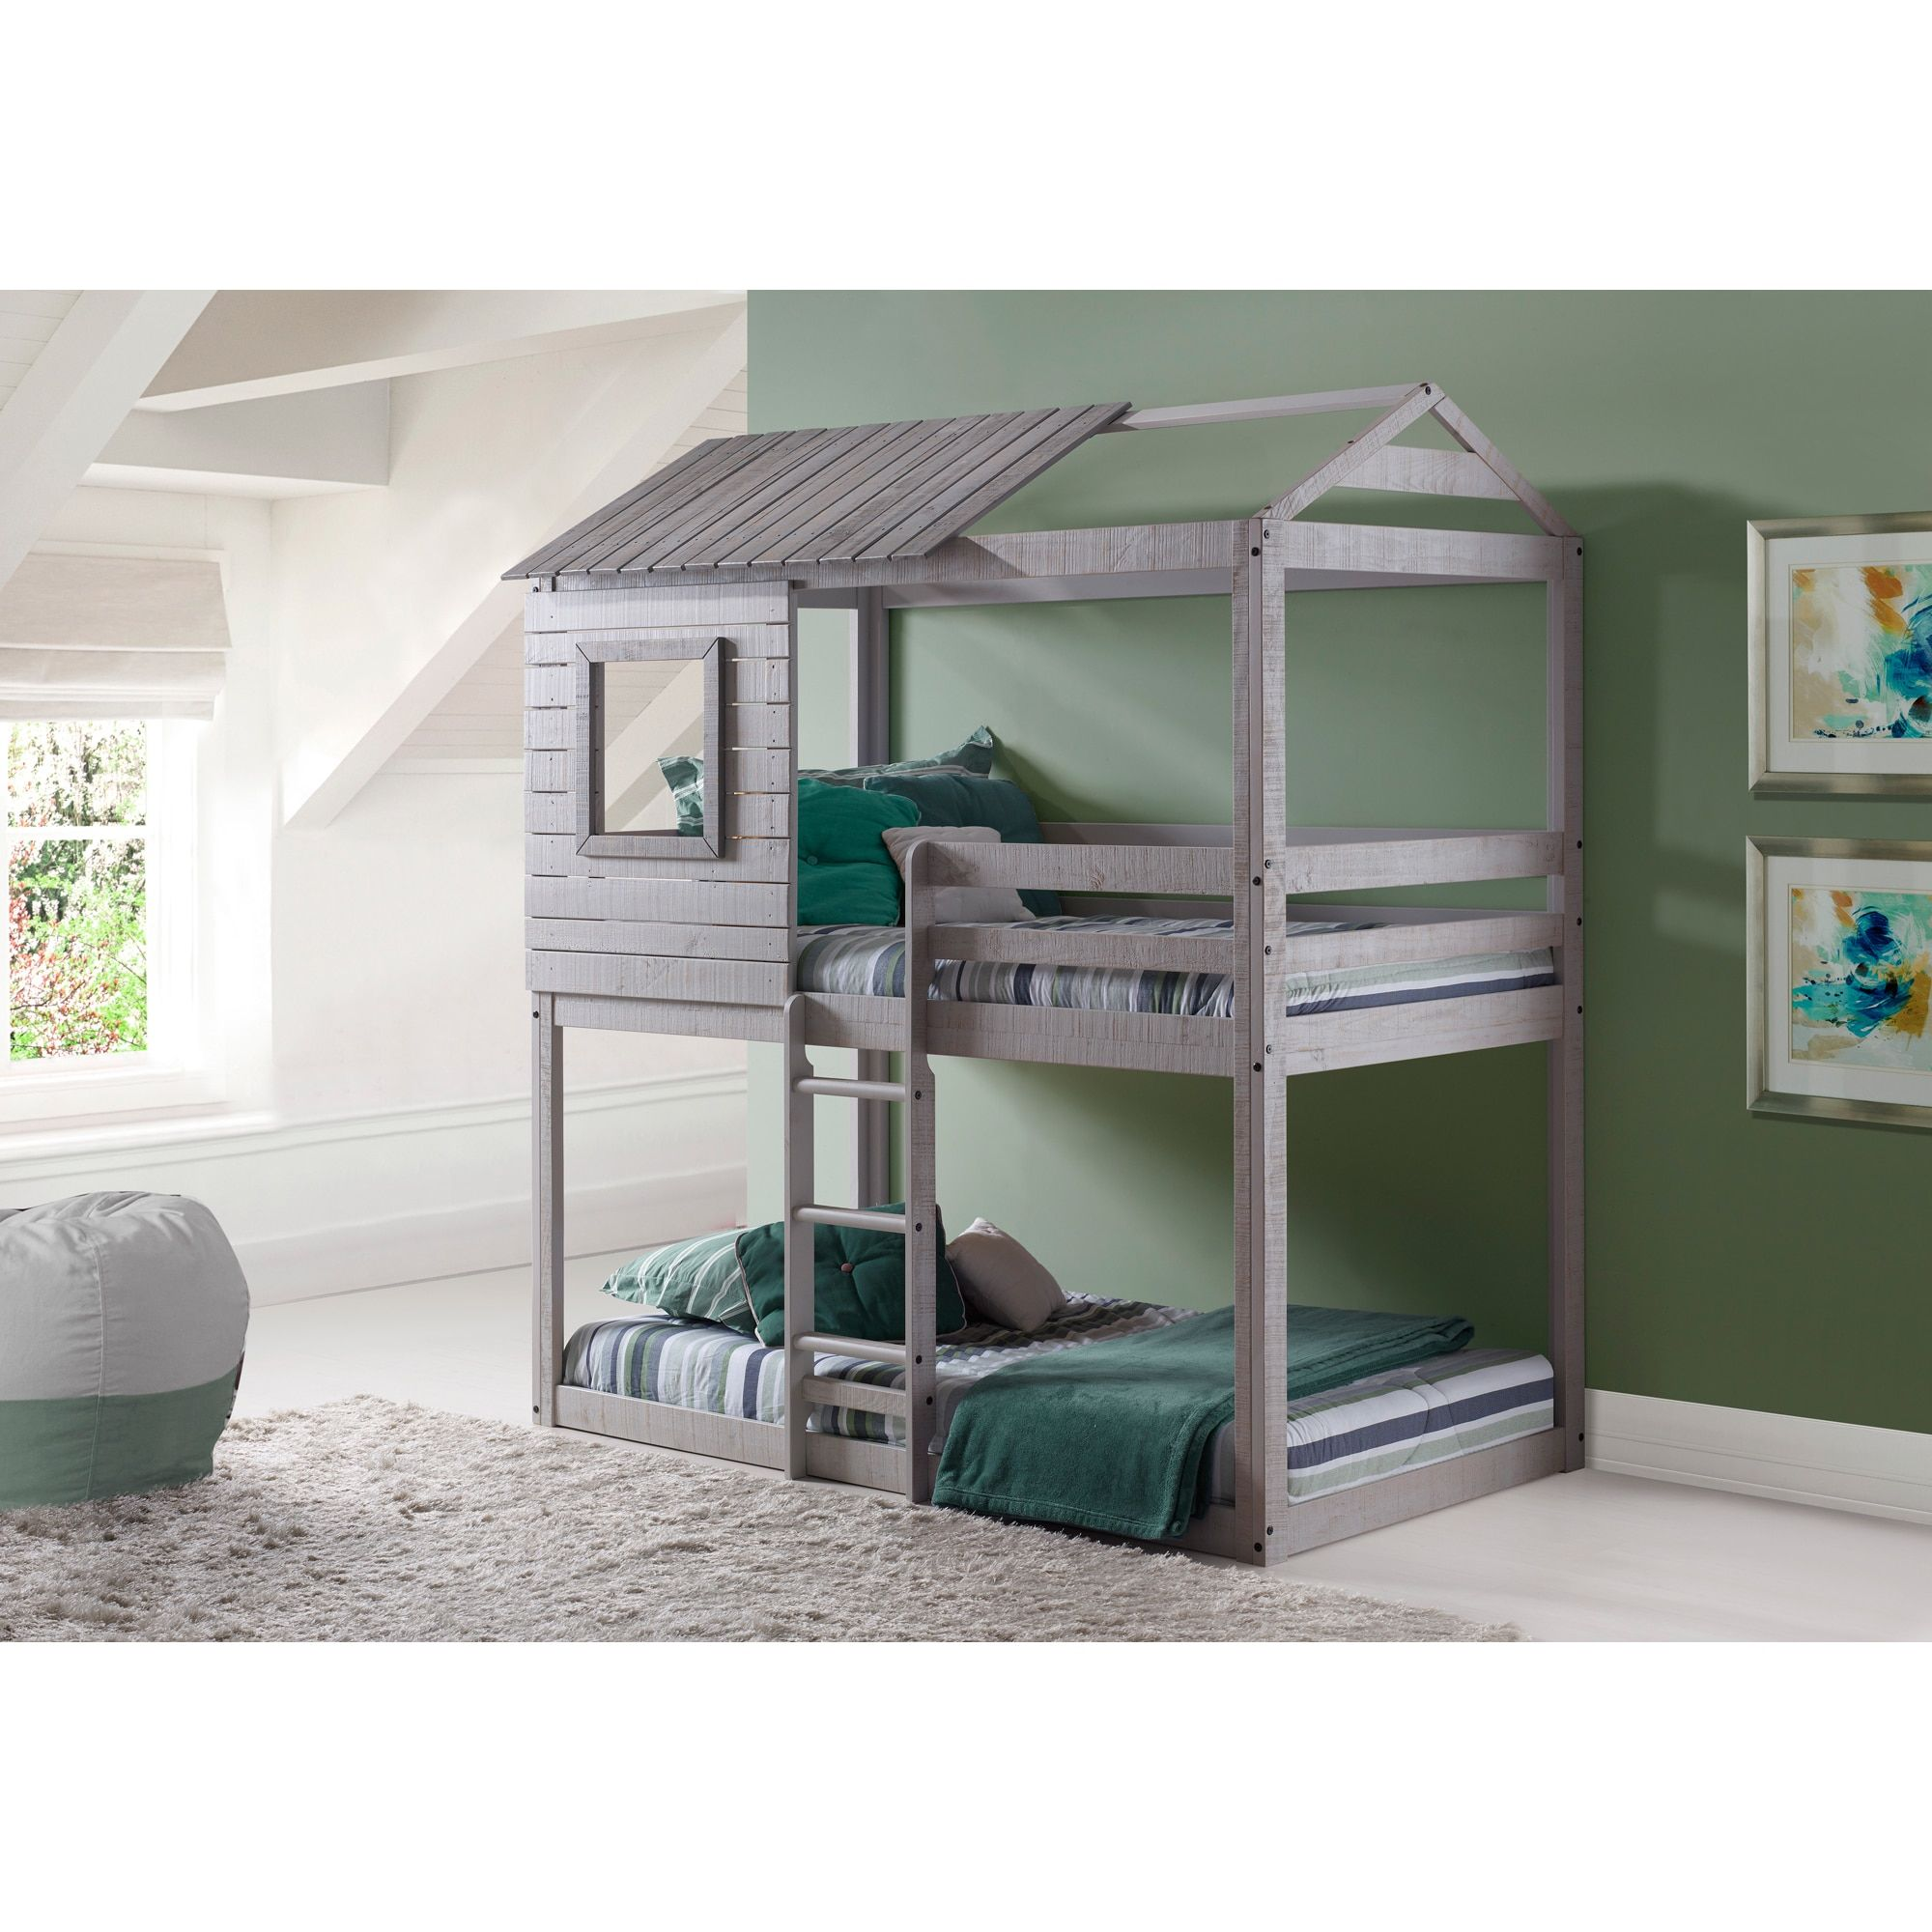 Loft over bedroom  Donco Kids LoftStyle Light Grey Twin over Twin Bunk Bed  Bunk bed